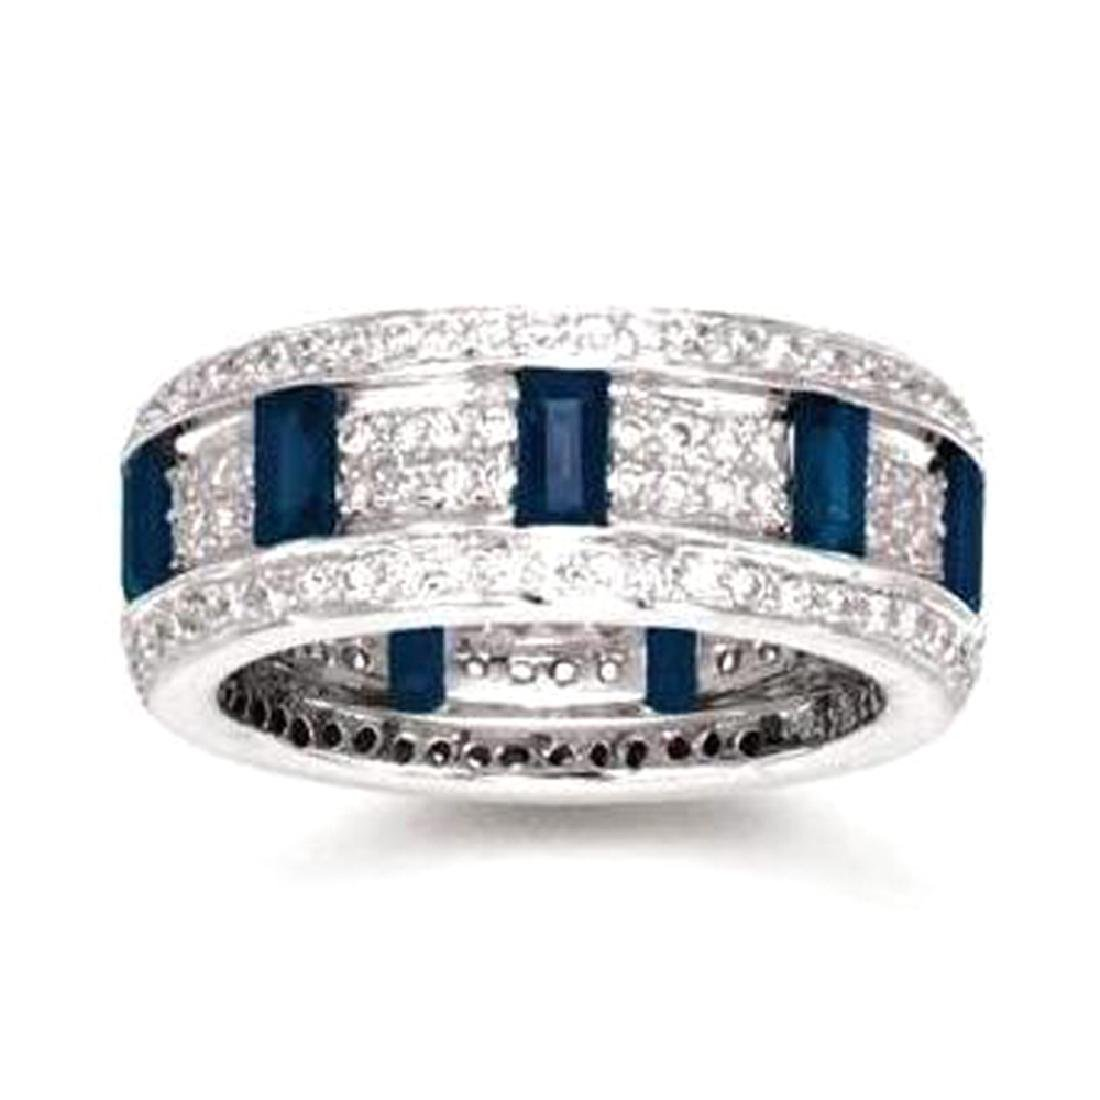 *Fine Jewelry, 14KT White Gold, 1.25CT Sapphire And